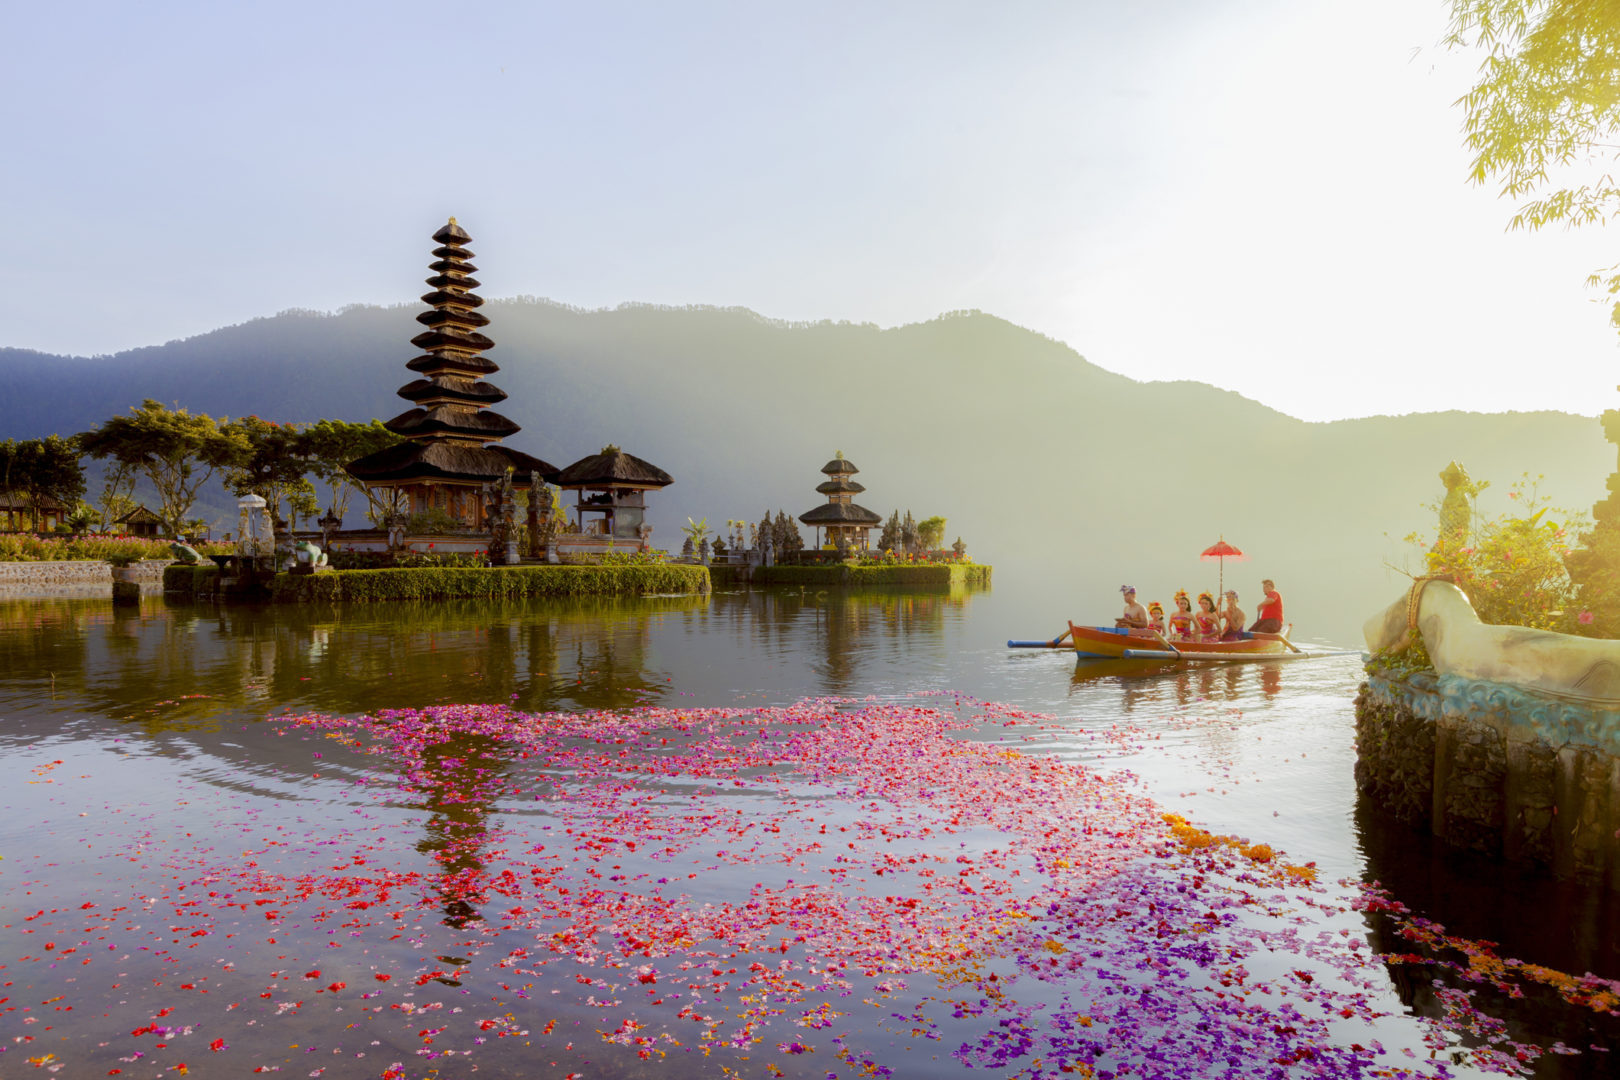 Top 5 experiences to discover in Ubud